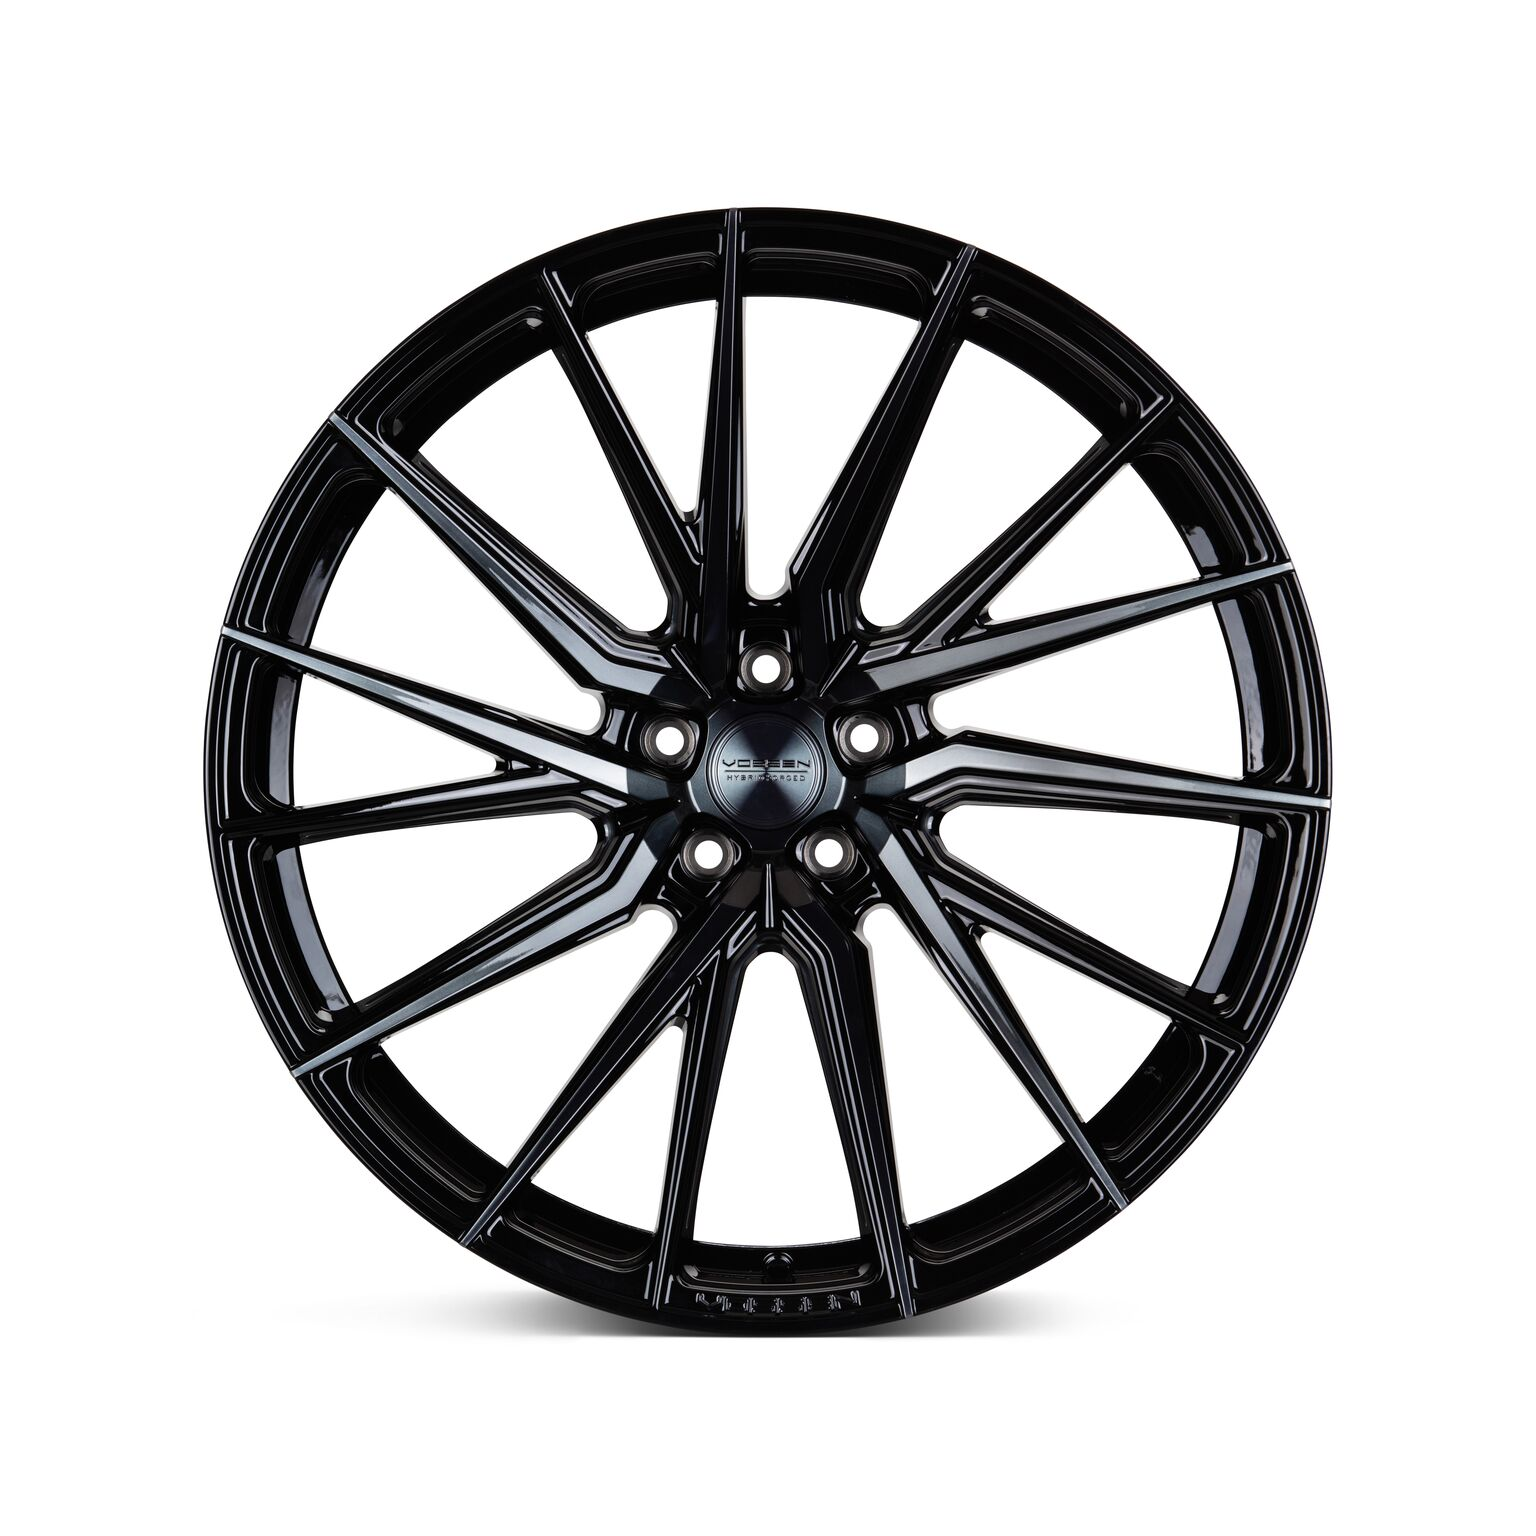 Vossen-HF-4T-wheels